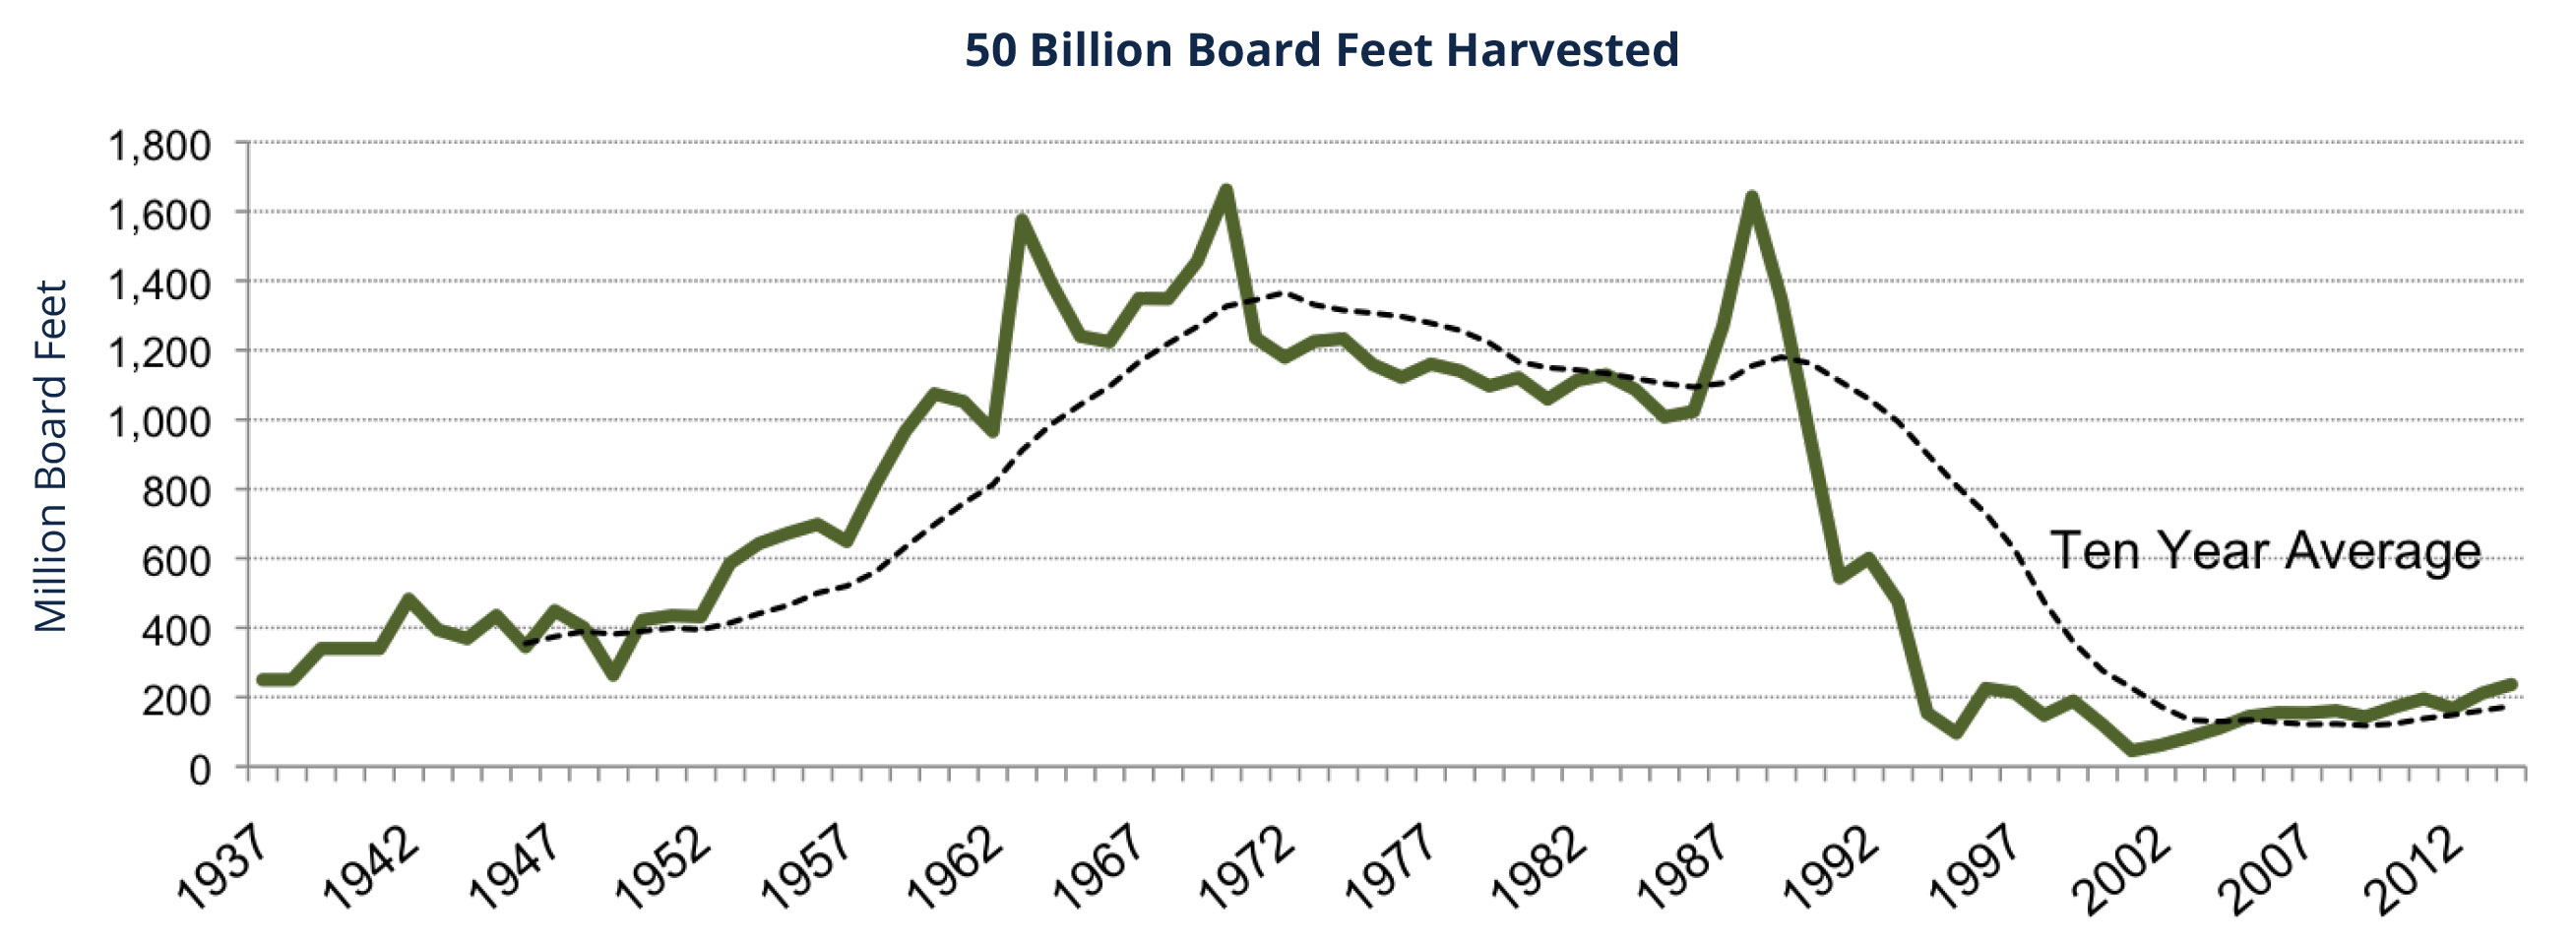 Sustained yield forestry association of oc counties history of harvest 1937 to 2014 biocorpaavc Images